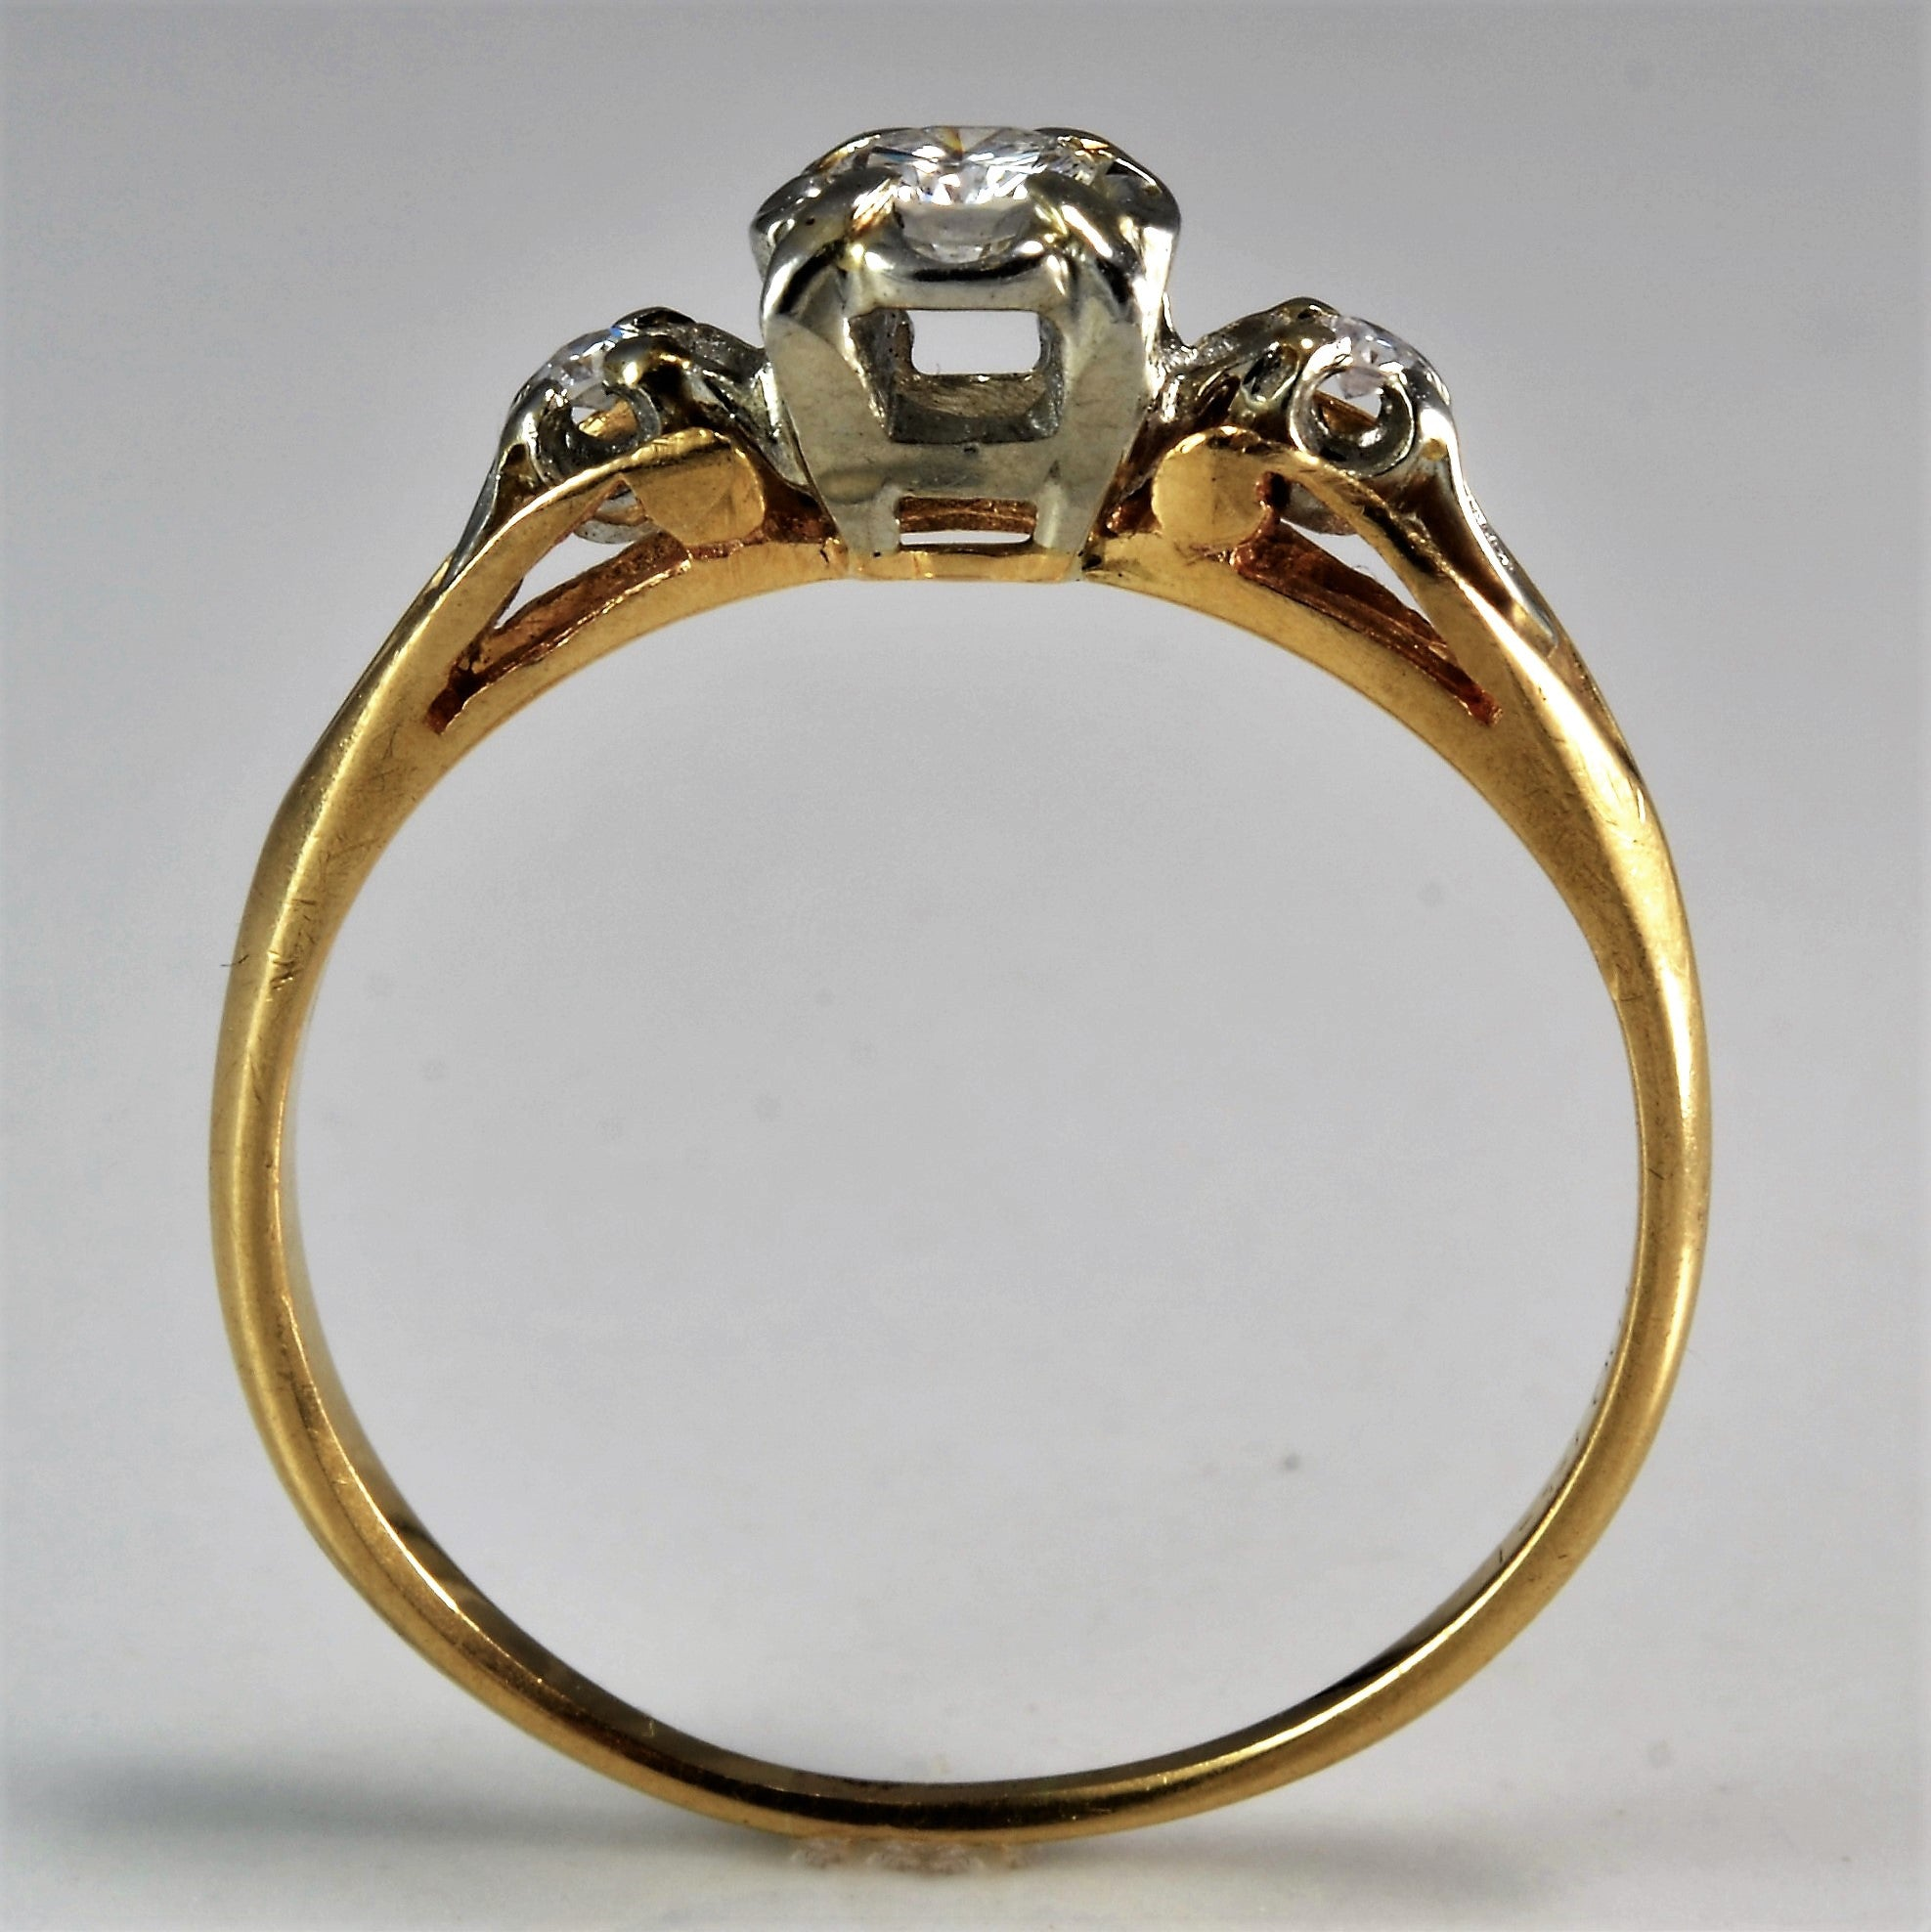 Retro Diamond Engagement Ring | 0.15 ctw, SZ 7.75 |